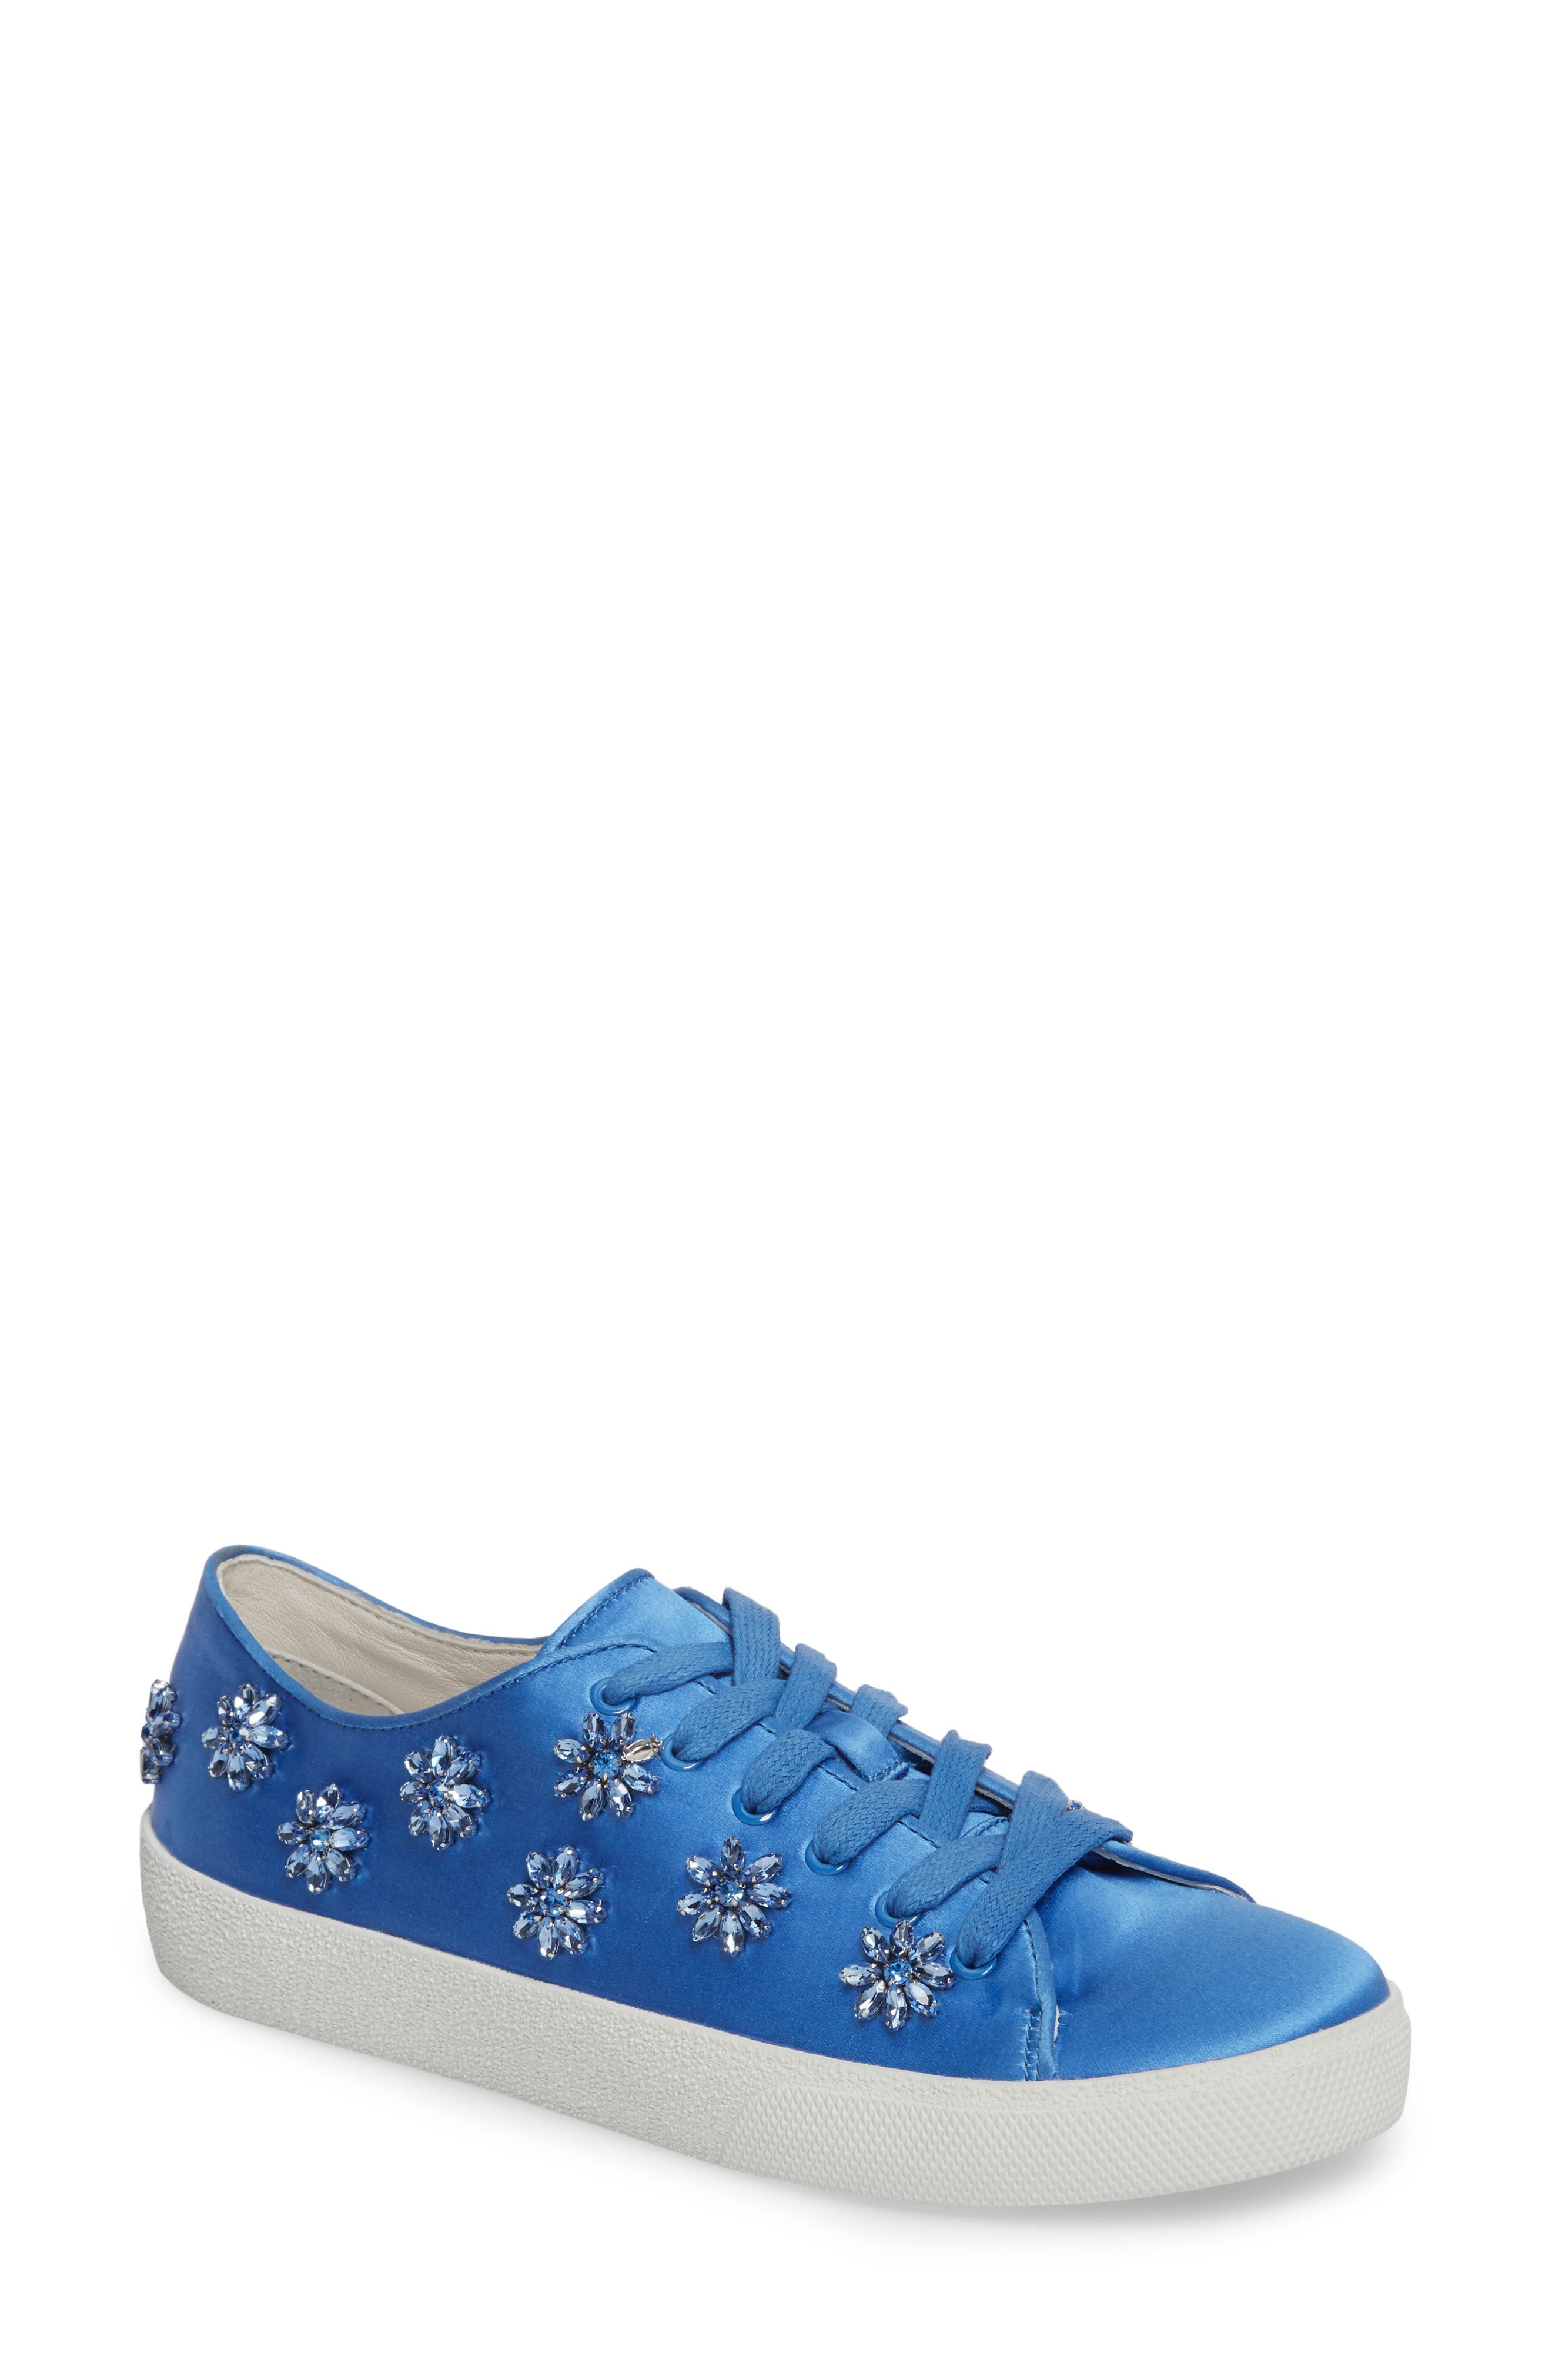 Cleo Crystal Embellished Sneaker,                             Main thumbnail 1, color,                             Cerulean